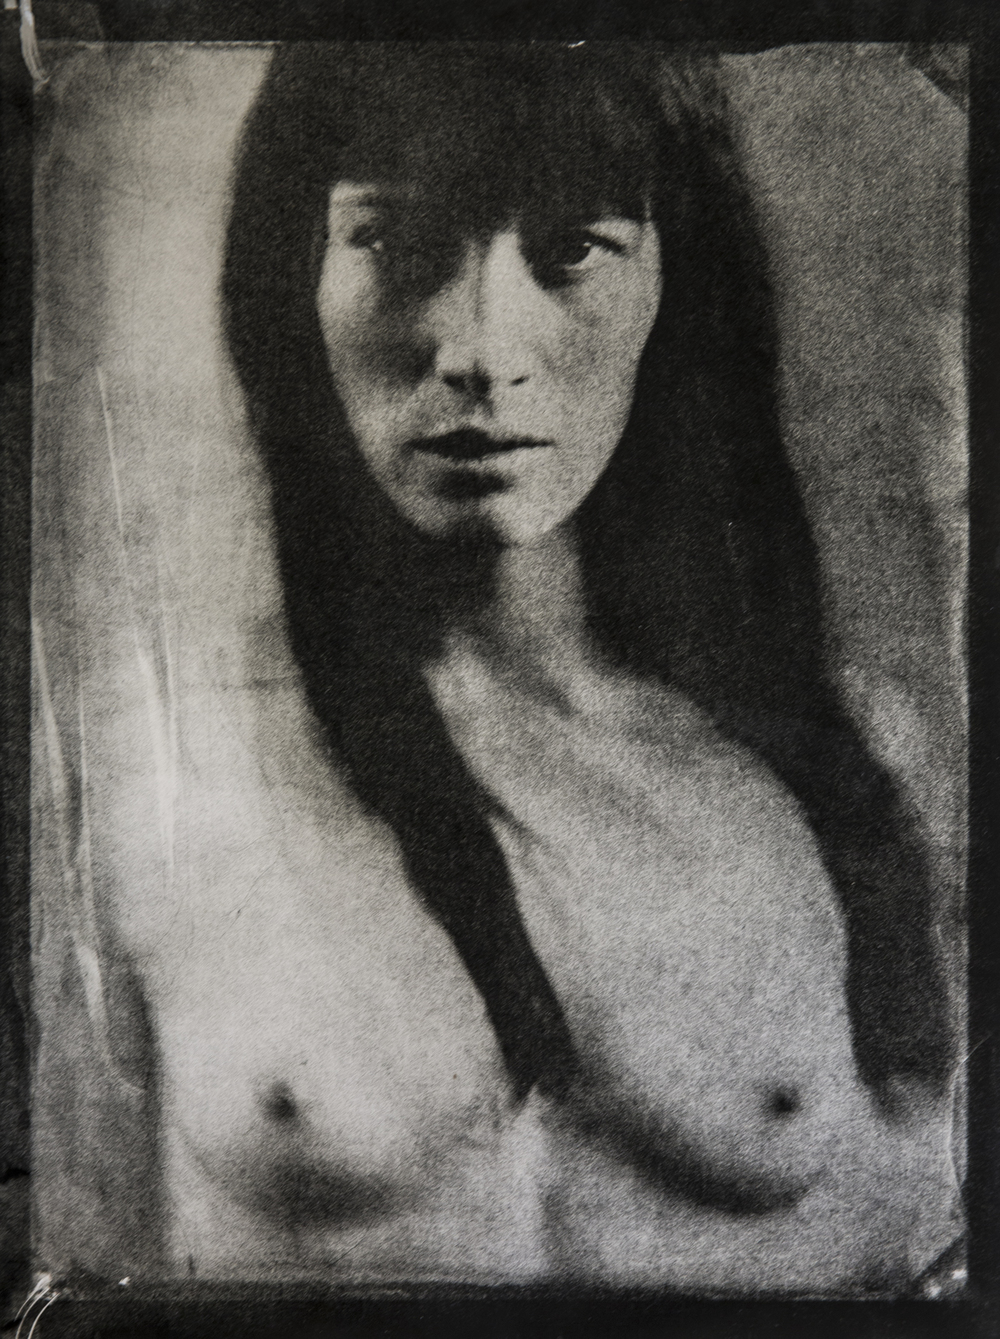 Oceane #1 - Lith print - edition of 6